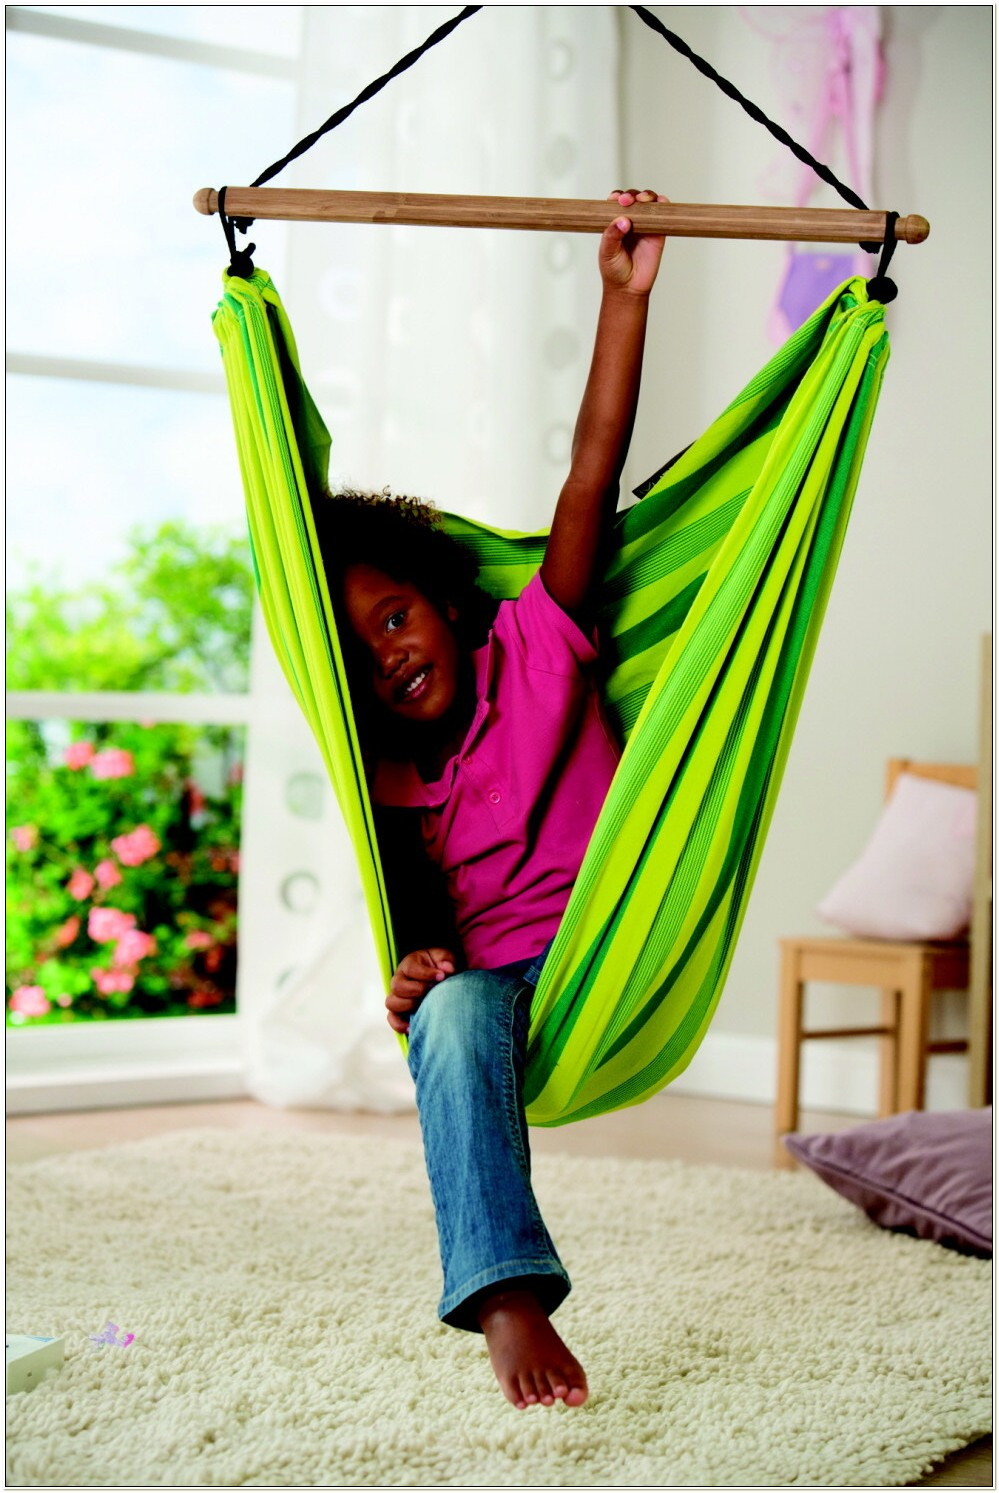 La Siesta Hanging Chair